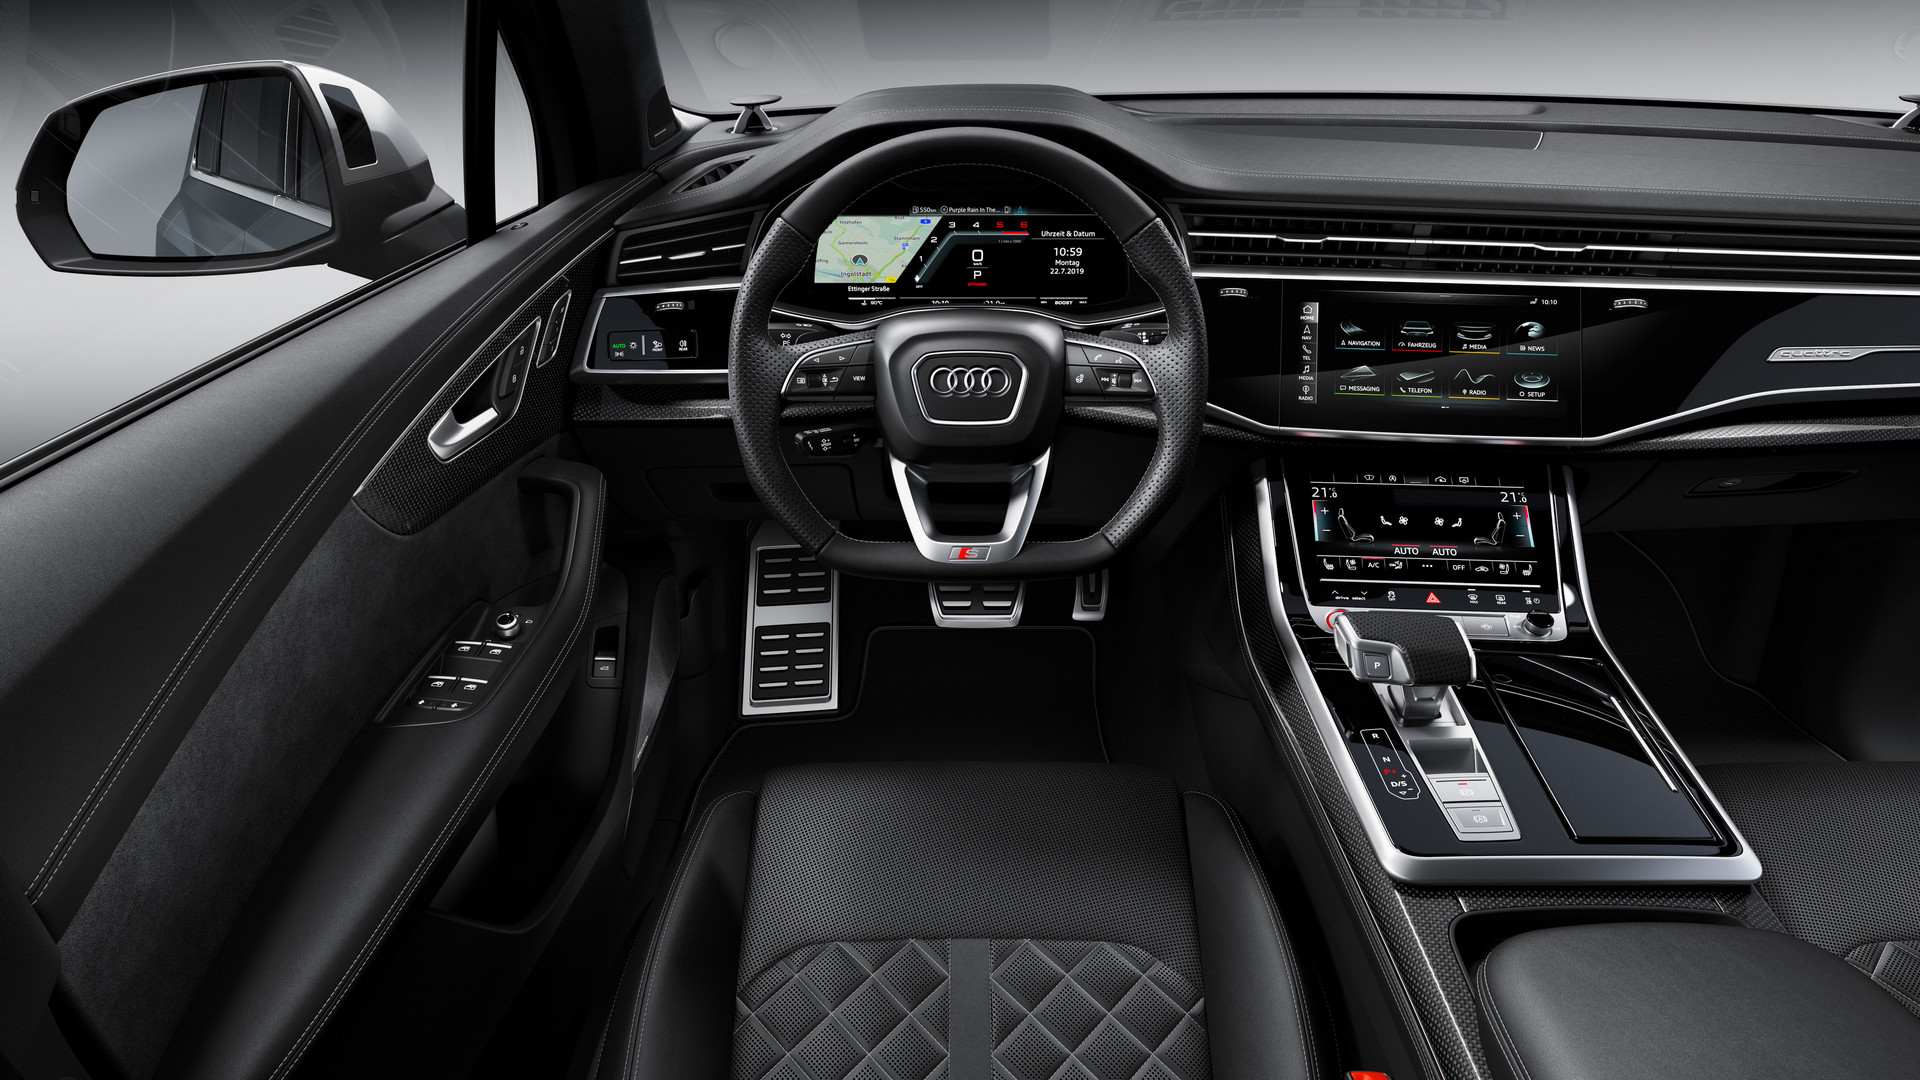 Audi SQ7 TDI Steering Wheel